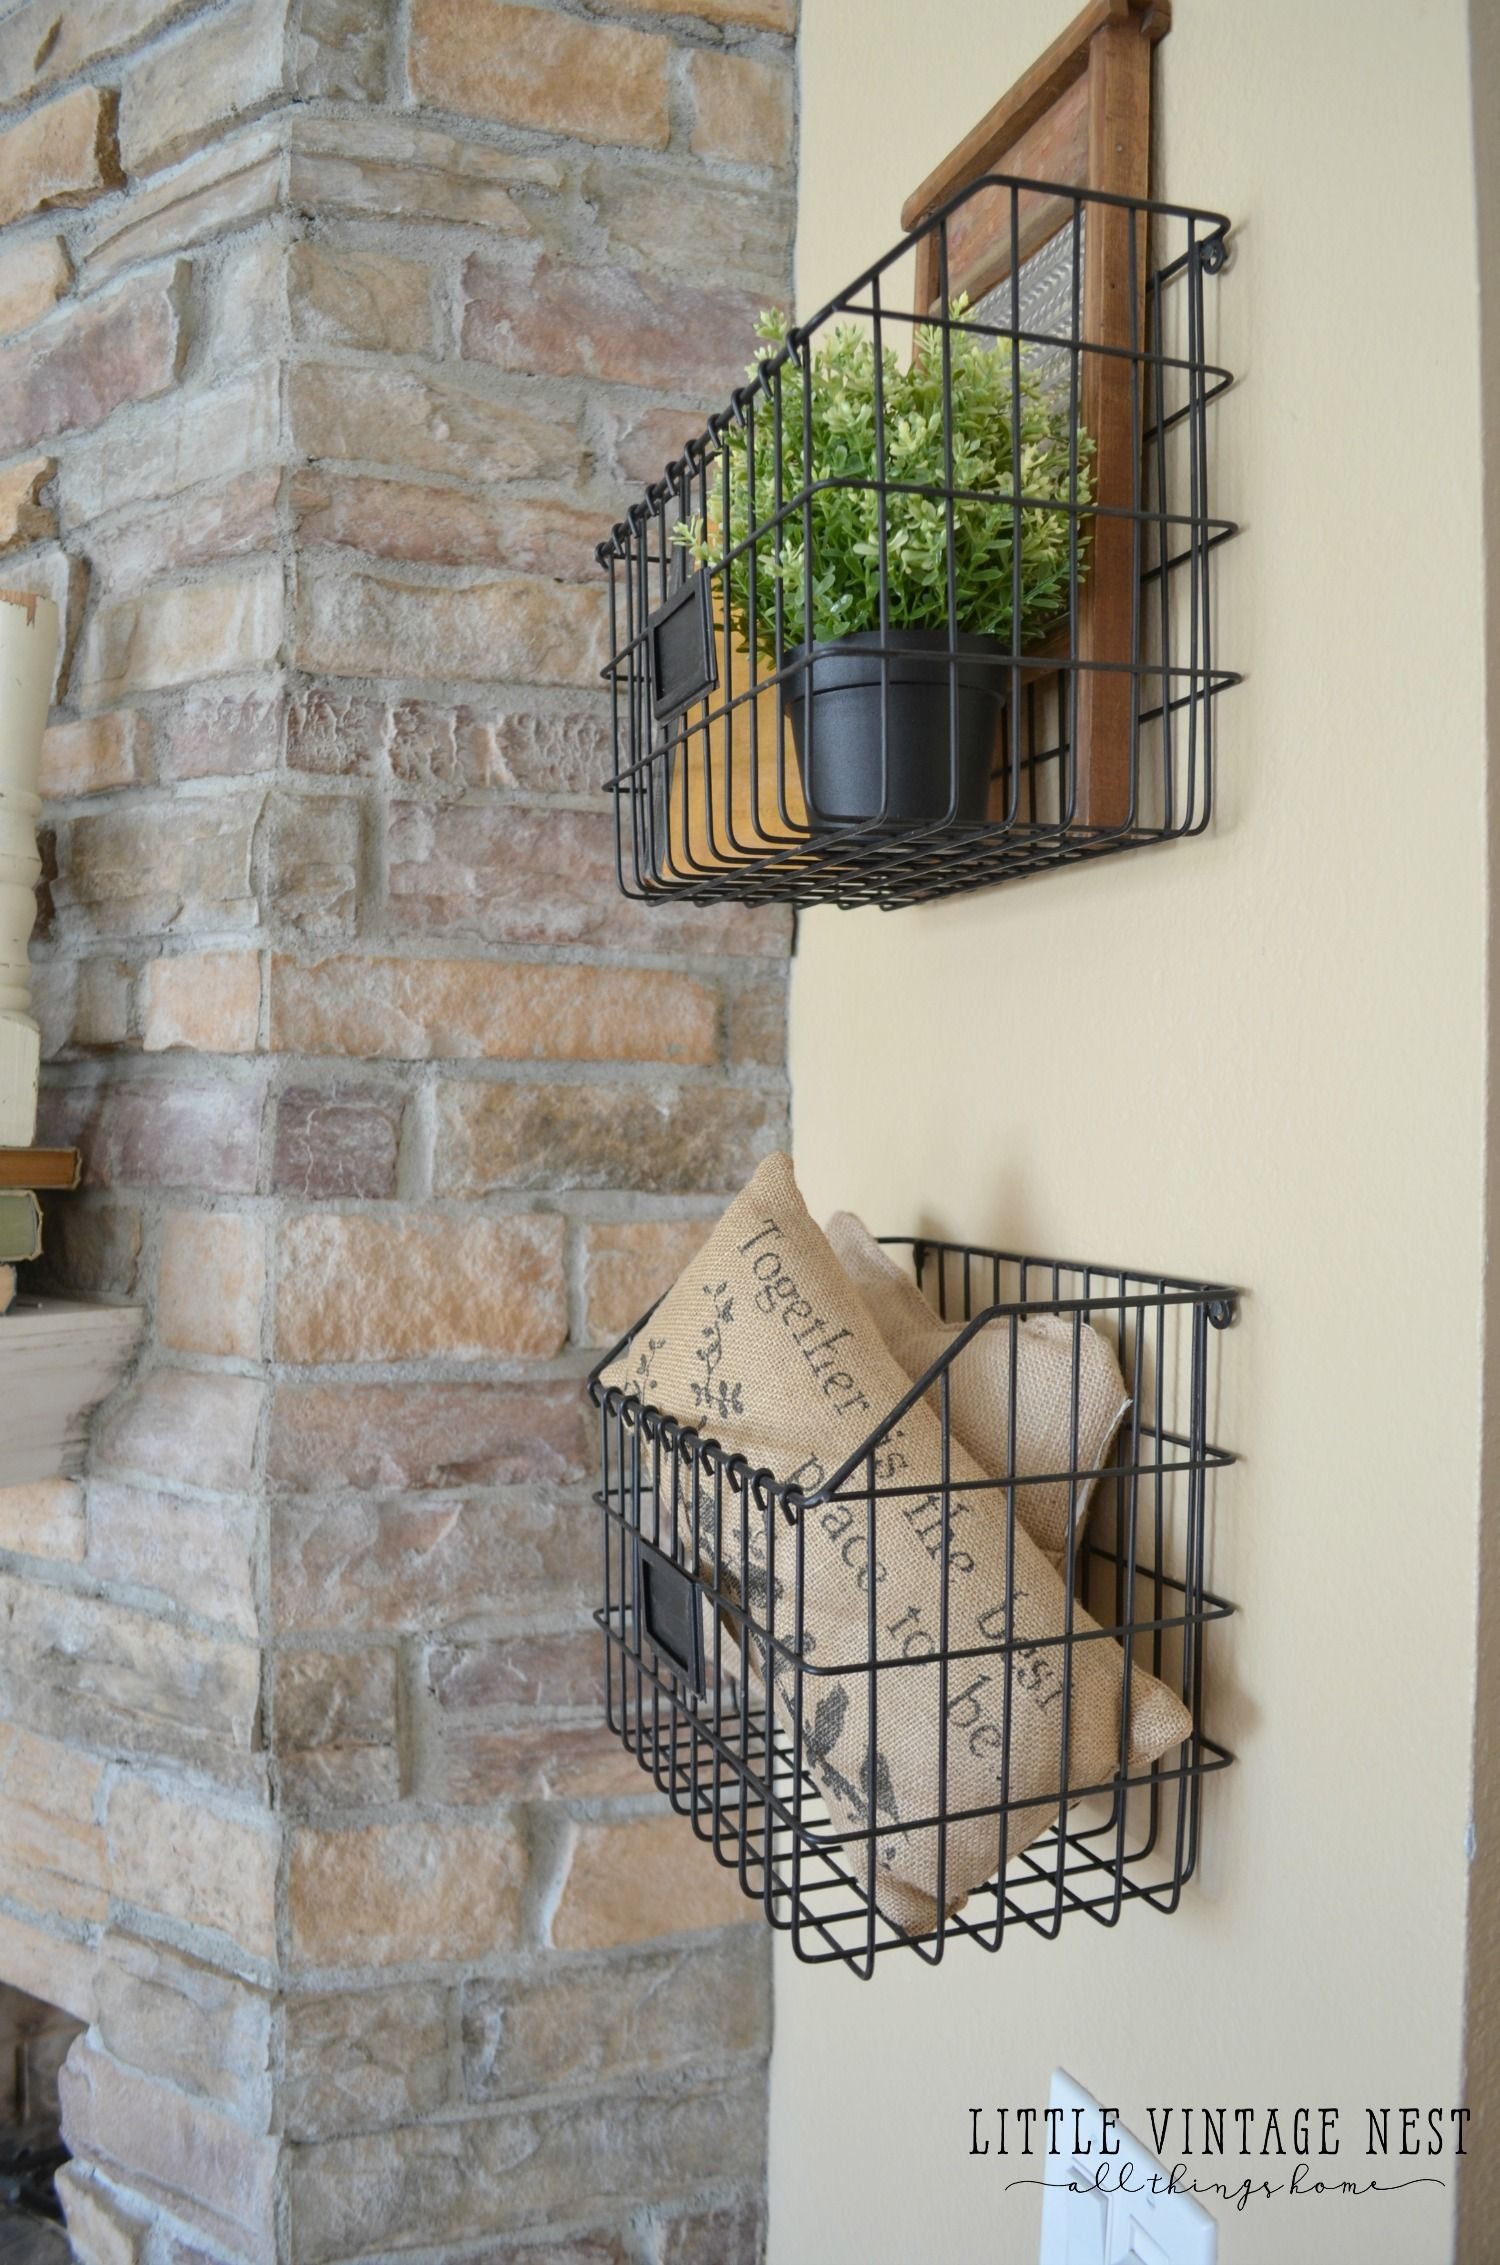 Farmhouse Style Decorating With Wire Baskets Sarah Joy Home Decor Baskets Farmhouse Wall Decor Farmhouse Style Decorating